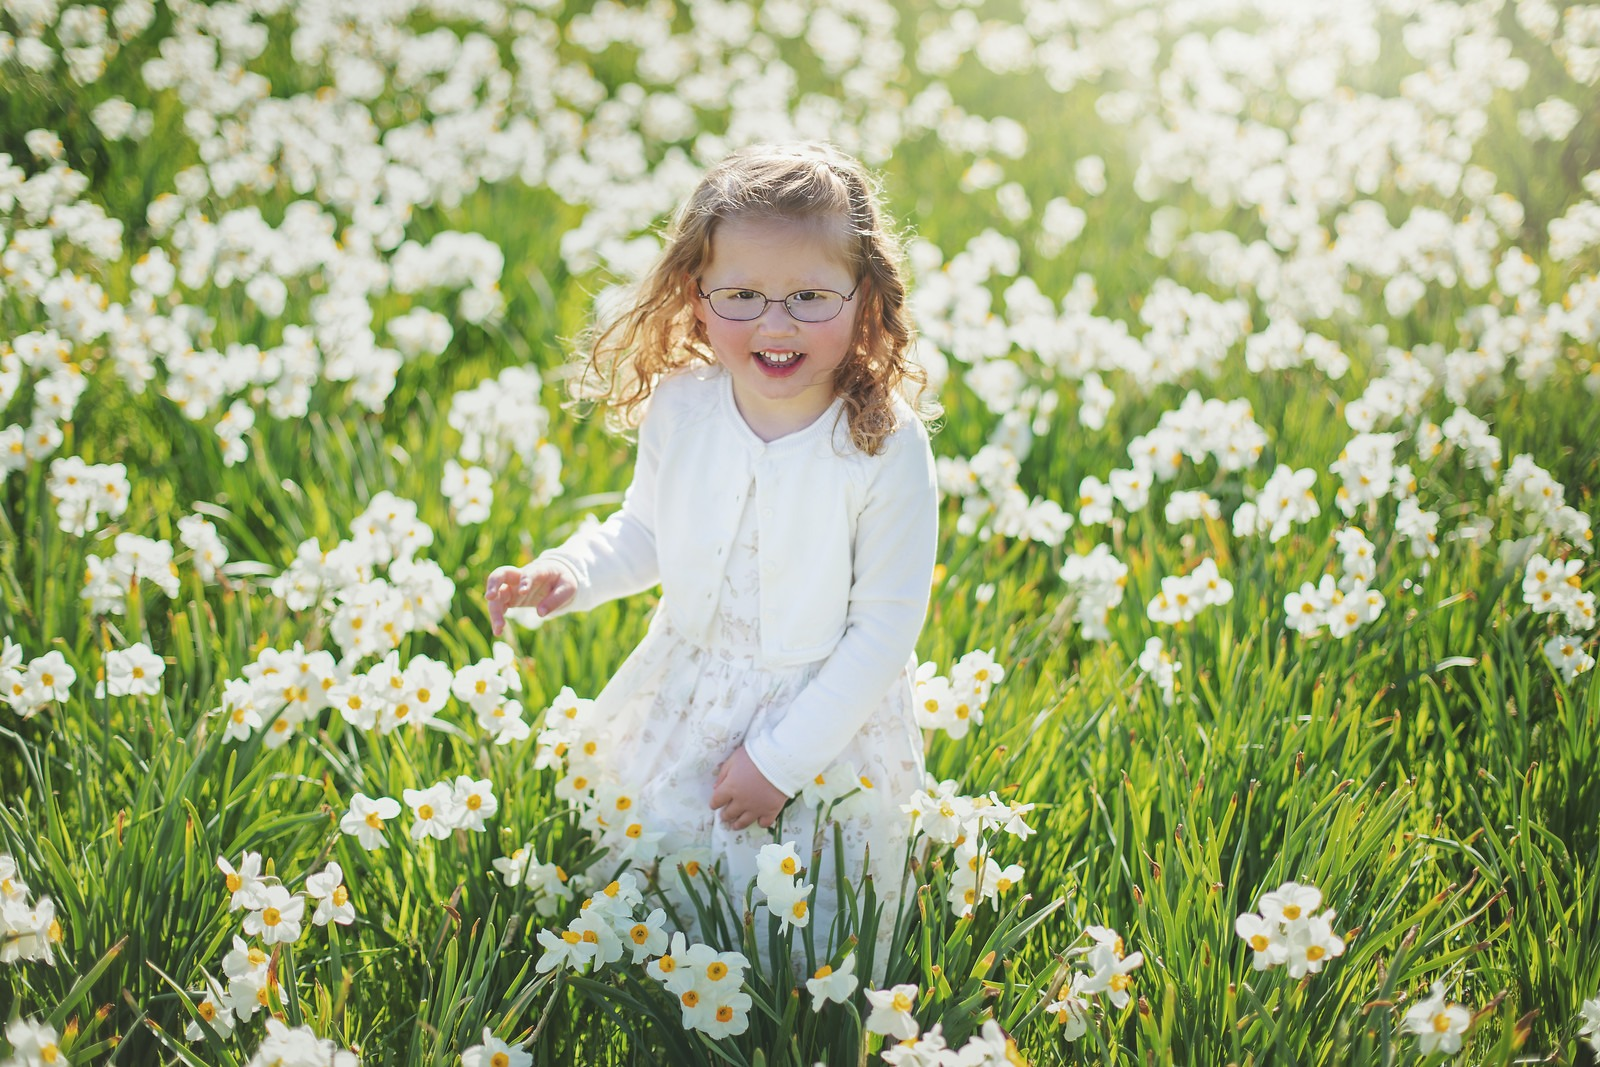 Girl Walking Through Daffodils in Cylburn Arboretum